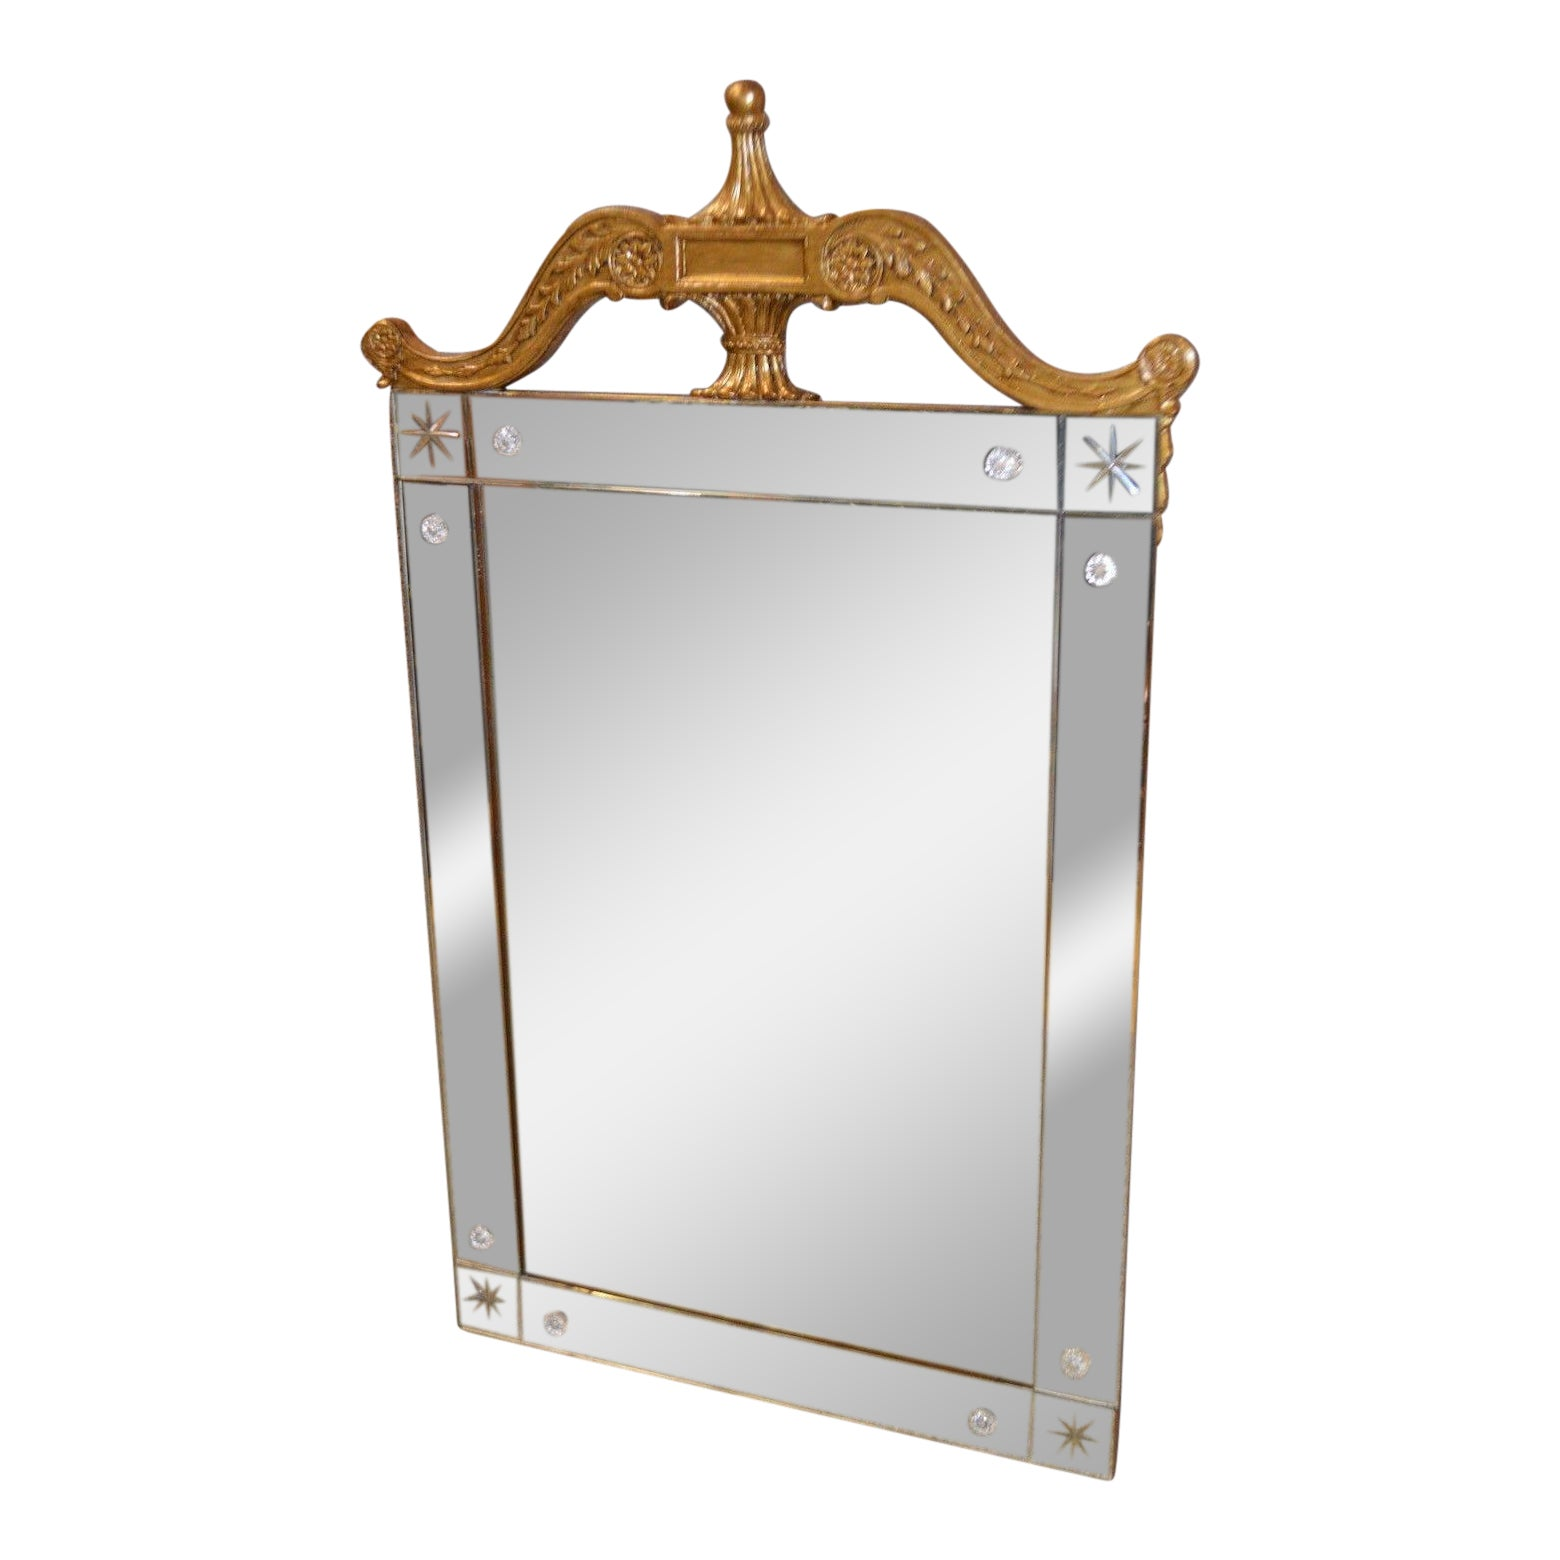 Vintage Art Deco Style Etched Glass Wall Mirror With Carved Burnished Gold Frame Chairish